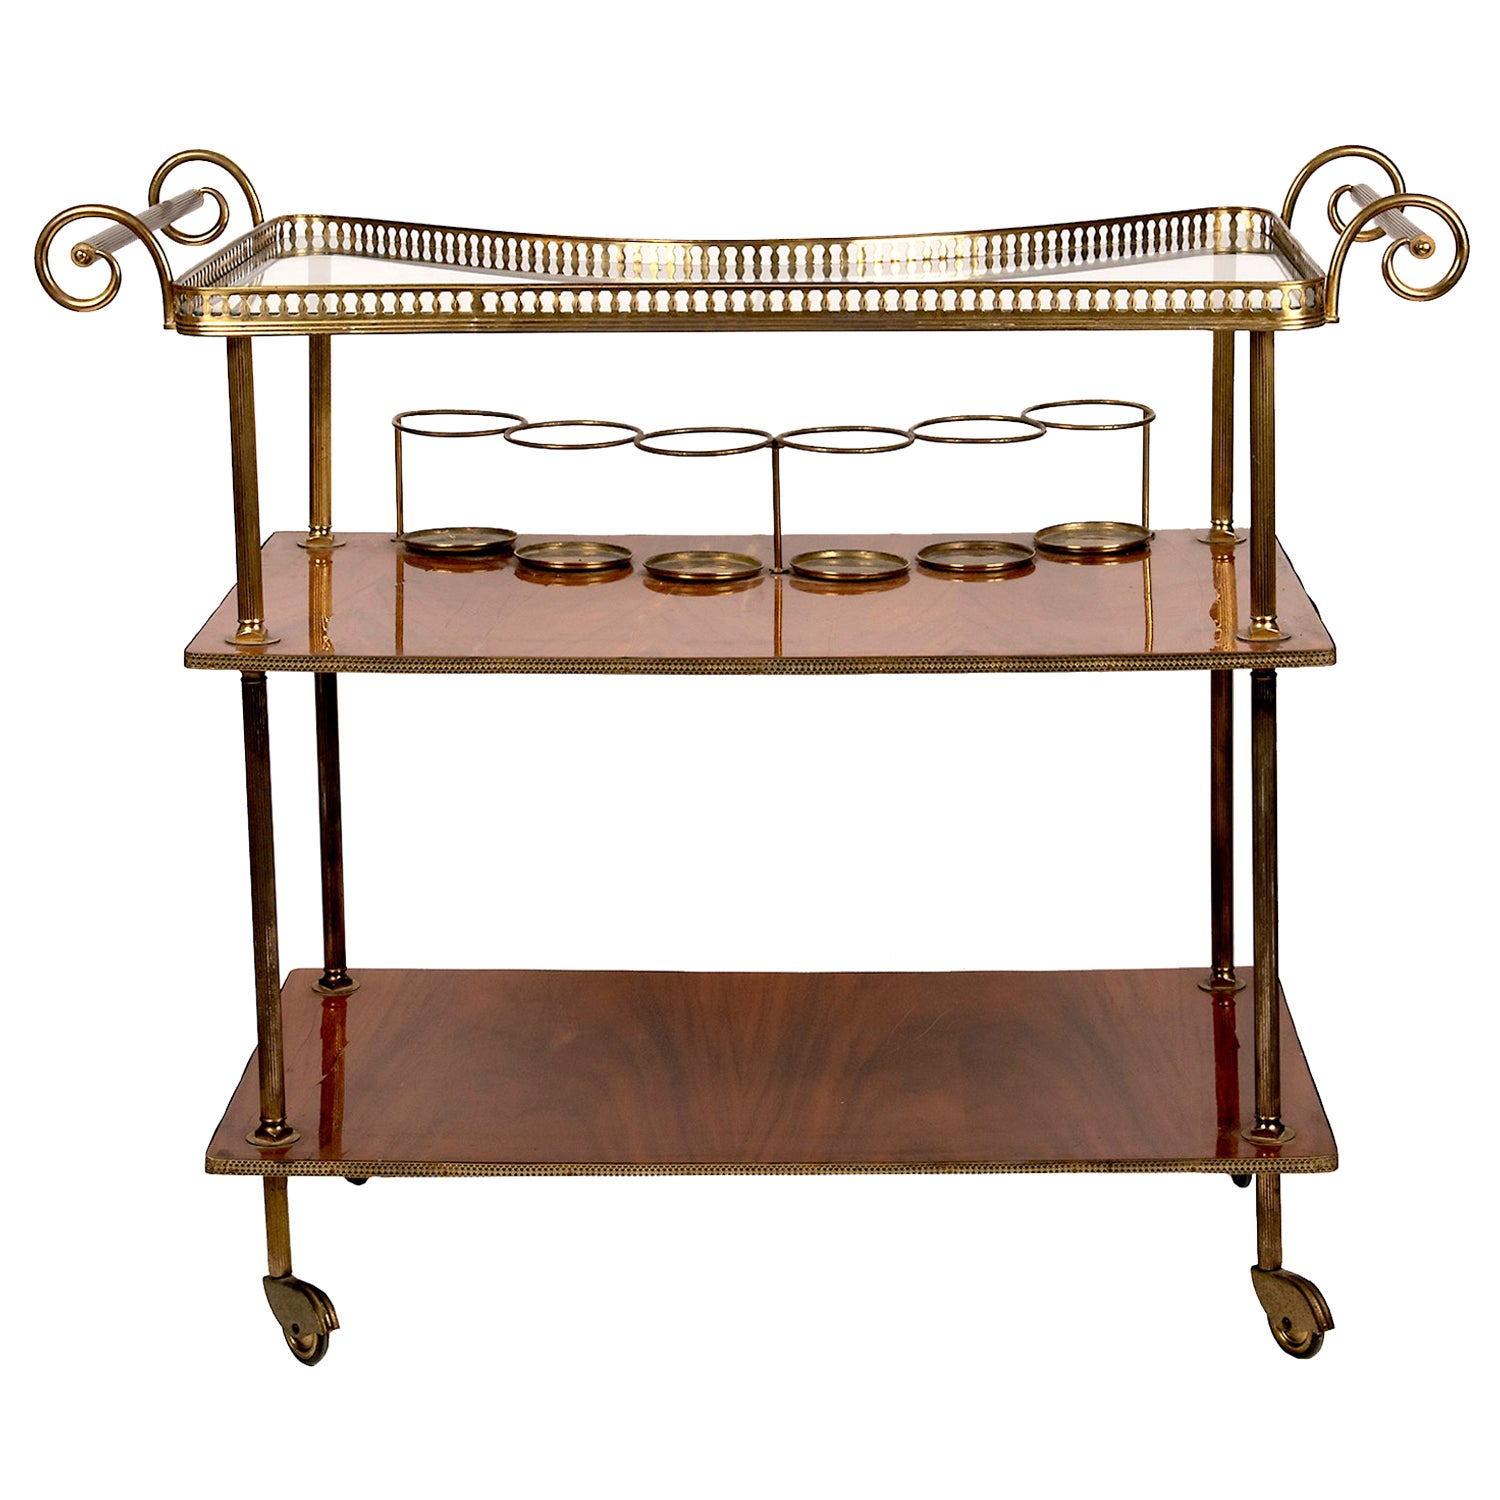 Vintage Continental Brass and Wood Bar Cart